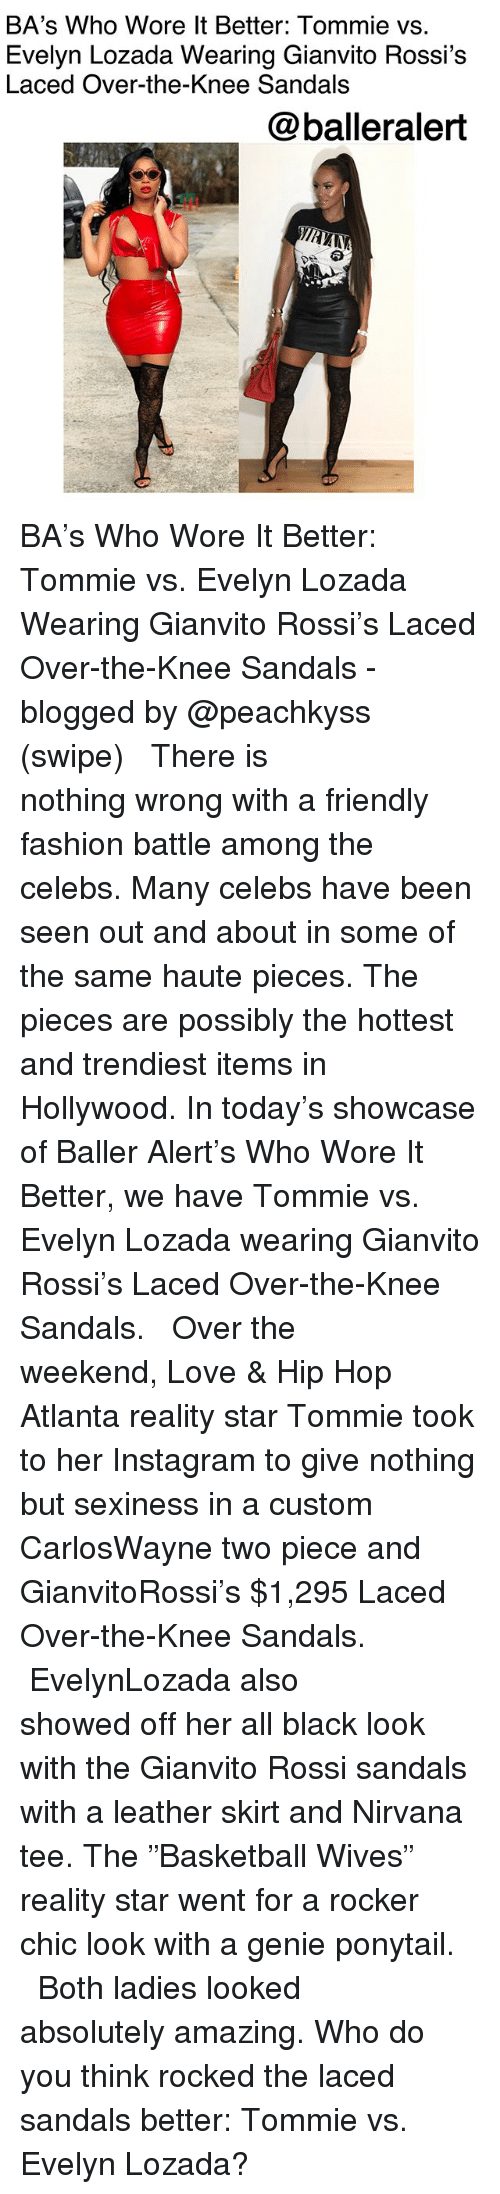 "Baller Alert, Fashion, and Instagram: BA's Who Wore lt Better: Tommie vs.  Evelyn Lozada Wearing Gianvito Rossi's  Laced Over-the-Knee Sandals  @balleralert  も: BA's Who Wore It Better: Tommie vs. Evelyn Lozada Wearing Gianvito Rossi's Laced Over-the-Knee Sandals -blogged by @peachkyss (swipe) ⠀⠀⠀⠀⠀⠀⠀ ⠀⠀⠀⠀⠀⠀⠀ There is nothing wrong with a friendly fashion battle among the celebs. Many celebs have been seen out and about in some of the same haute pieces. The pieces are possibly the hottest and trendiest items in Hollywood. In today's showcase of Baller Alert's Who Wore It Better, we have Tommie vs. Evelyn Lozada wearing Gianvito Rossi's Laced Over-the-Knee Sandals. ⠀⠀⠀⠀⠀⠀⠀ ⠀⠀⠀⠀⠀⠀⠀ Over the weekend, Love & Hip Hop Atlanta reality star Tommie took to her Instagram to give nothing but sexiness in a custom CarlosWayne two piece and GianvitoRossi's $1,295 Laced Over-the-Knee Sandals. ⠀⠀⠀⠀⠀⠀⠀ ⠀⠀⠀⠀⠀⠀⠀ EvelynLozada also showed off her all black look with the Gianvito Rossi sandals with a leather skirt and Nirvana tee. The ""Basketball Wives"" reality star went for a rocker chic look with a genie ponytail. ⠀⠀⠀⠀⠀⠀⠀ ⠀⠀⠀⠀⠀⠀⠀ Both ladies looked absolutely amazing. Who do you think rocked the laced sandals better: Tommie vs. Evelyn Lozada?"